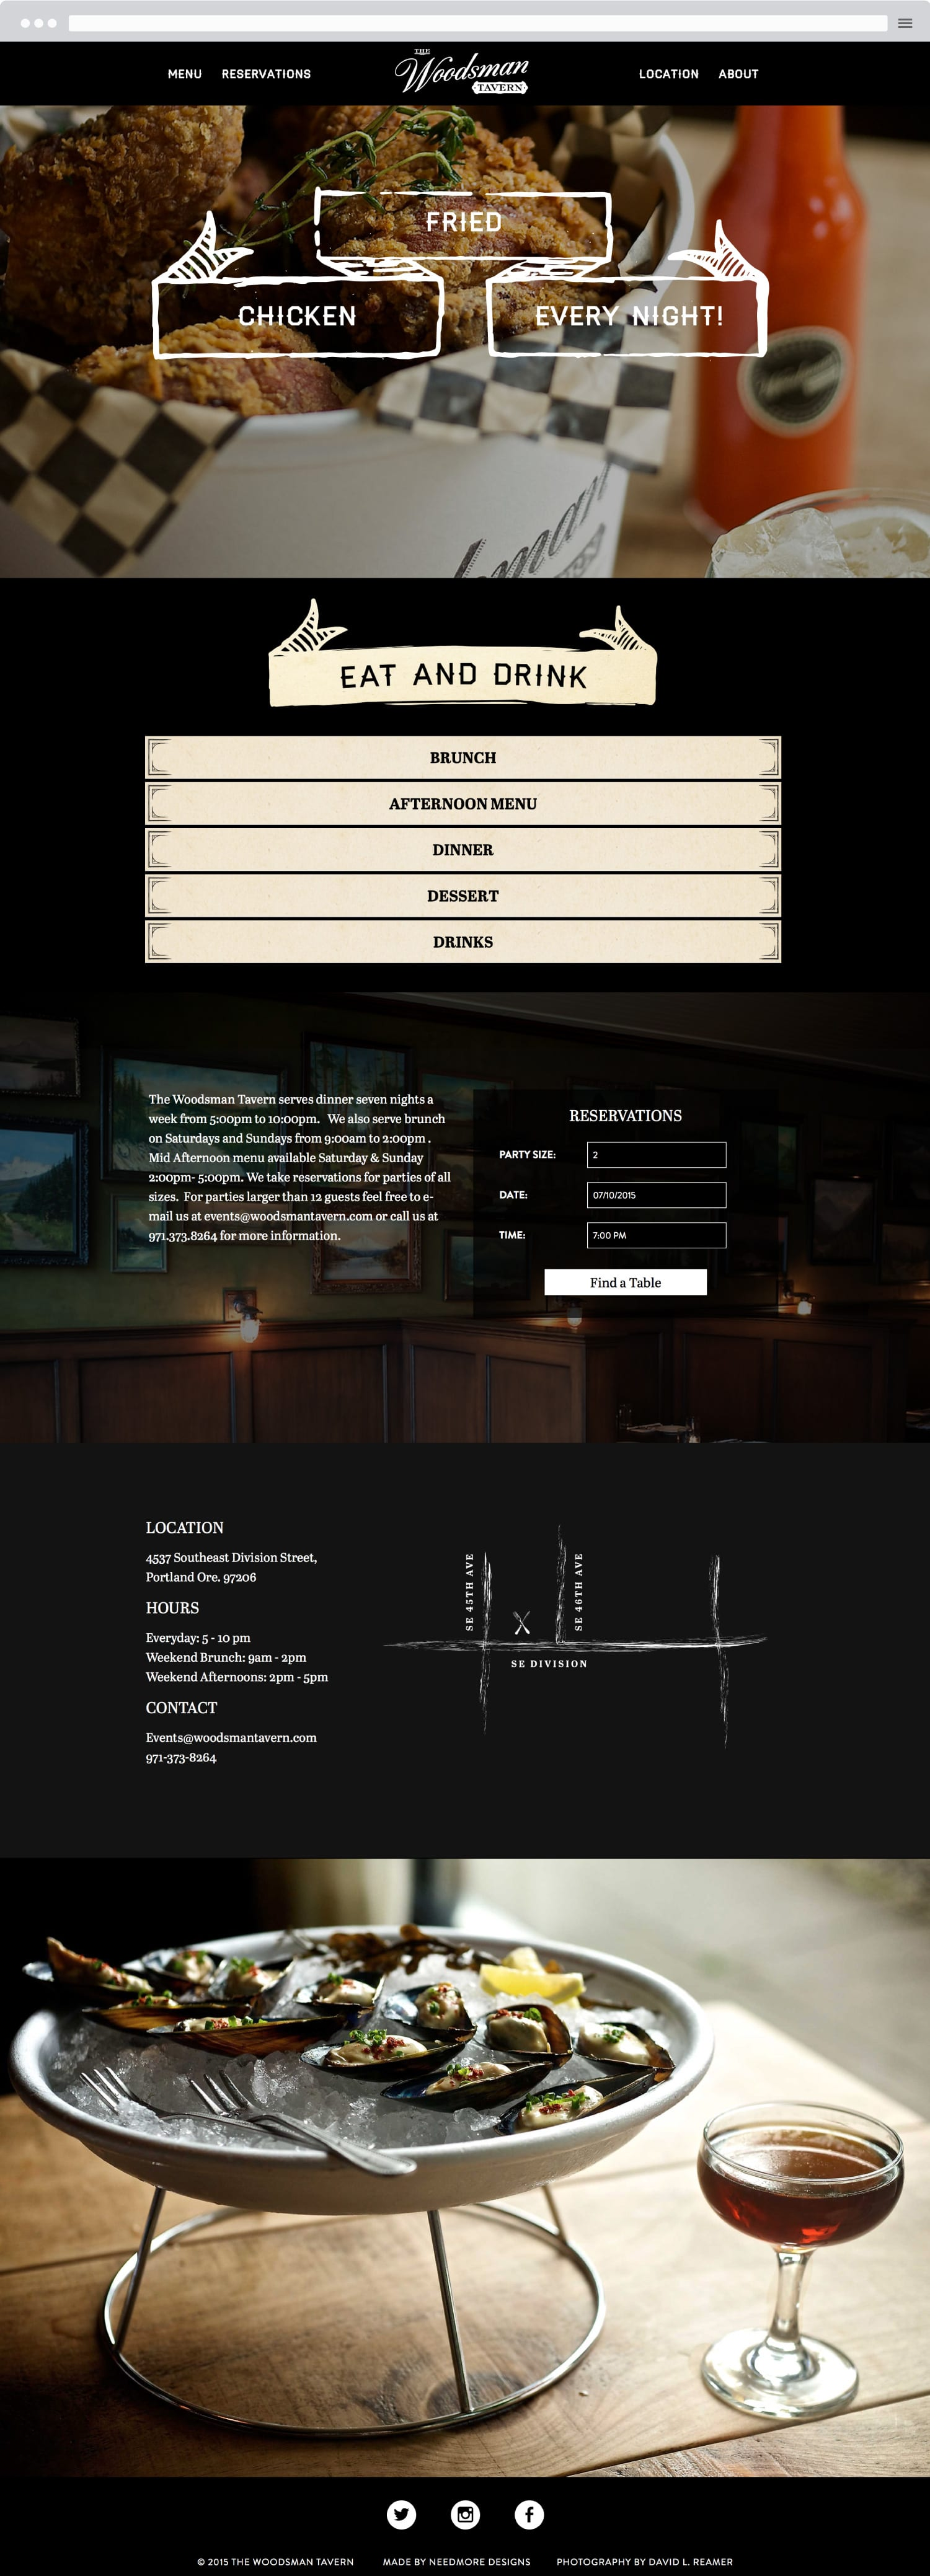 Woodsman Tavern website redesign